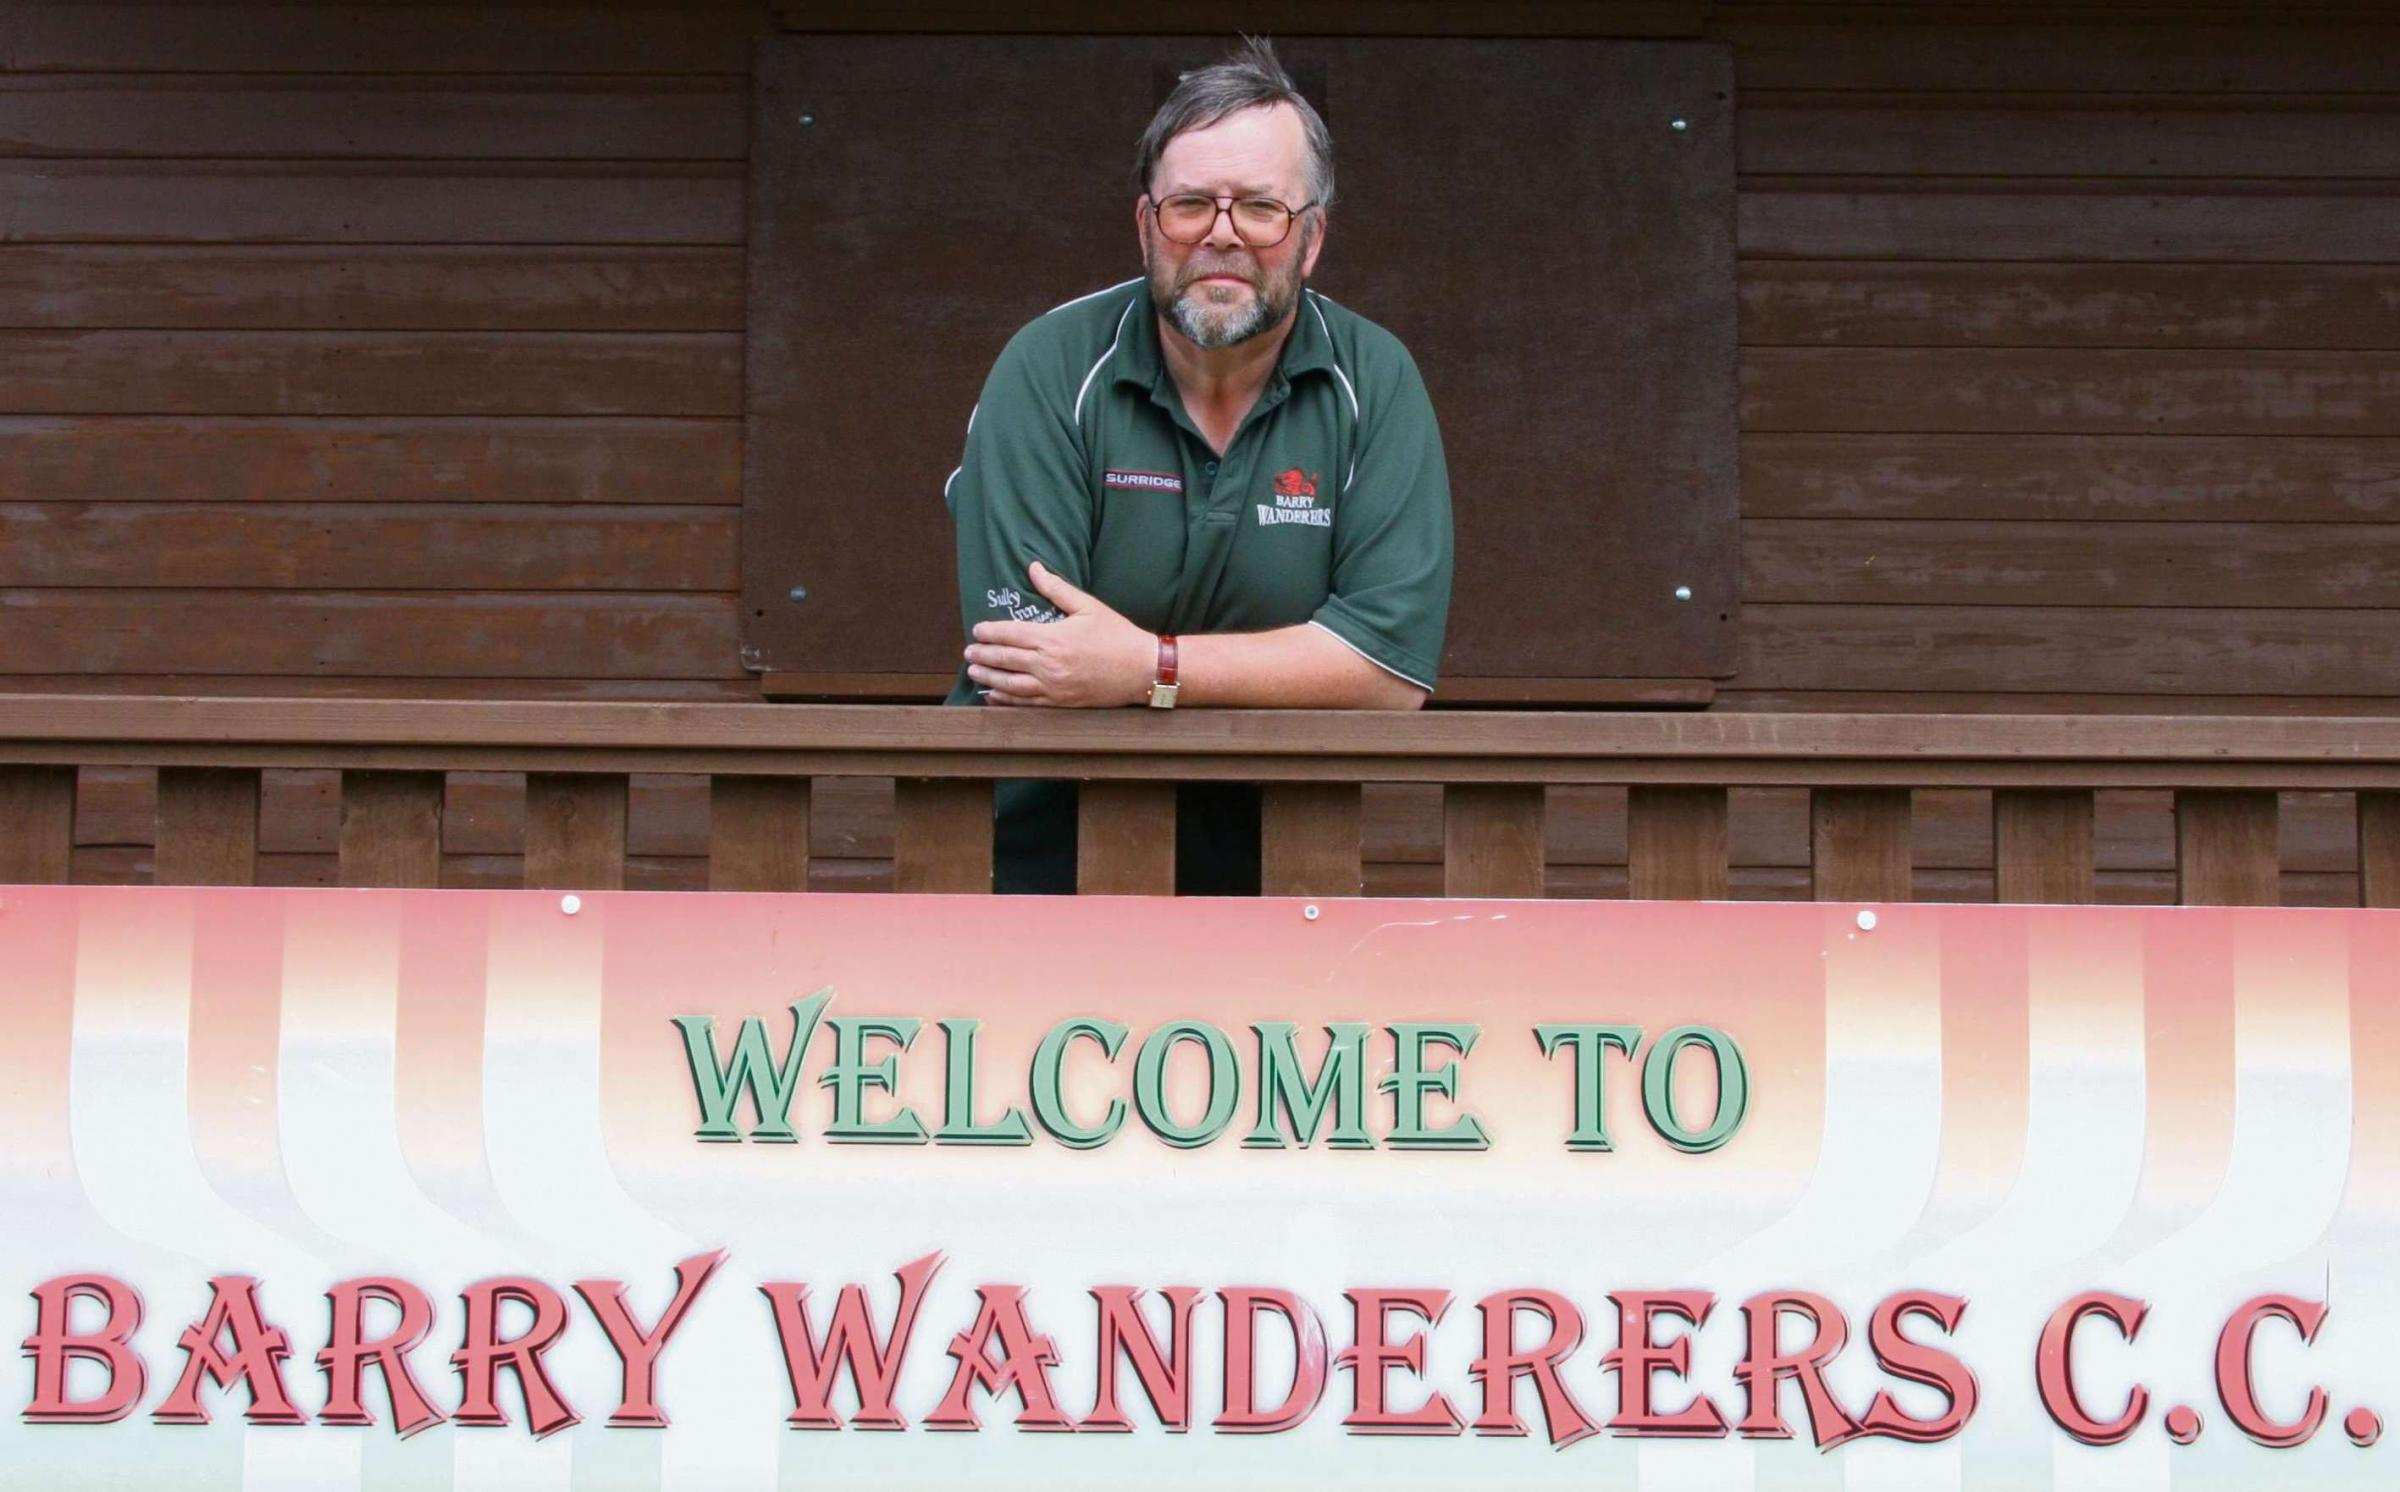 CLUB FOUNDER: On Bank Holiday Monday, May 26, Barry Wanderers Cricket Club hosts a special day in memory of founder Mike Ashton who sadly passed away in October last year.